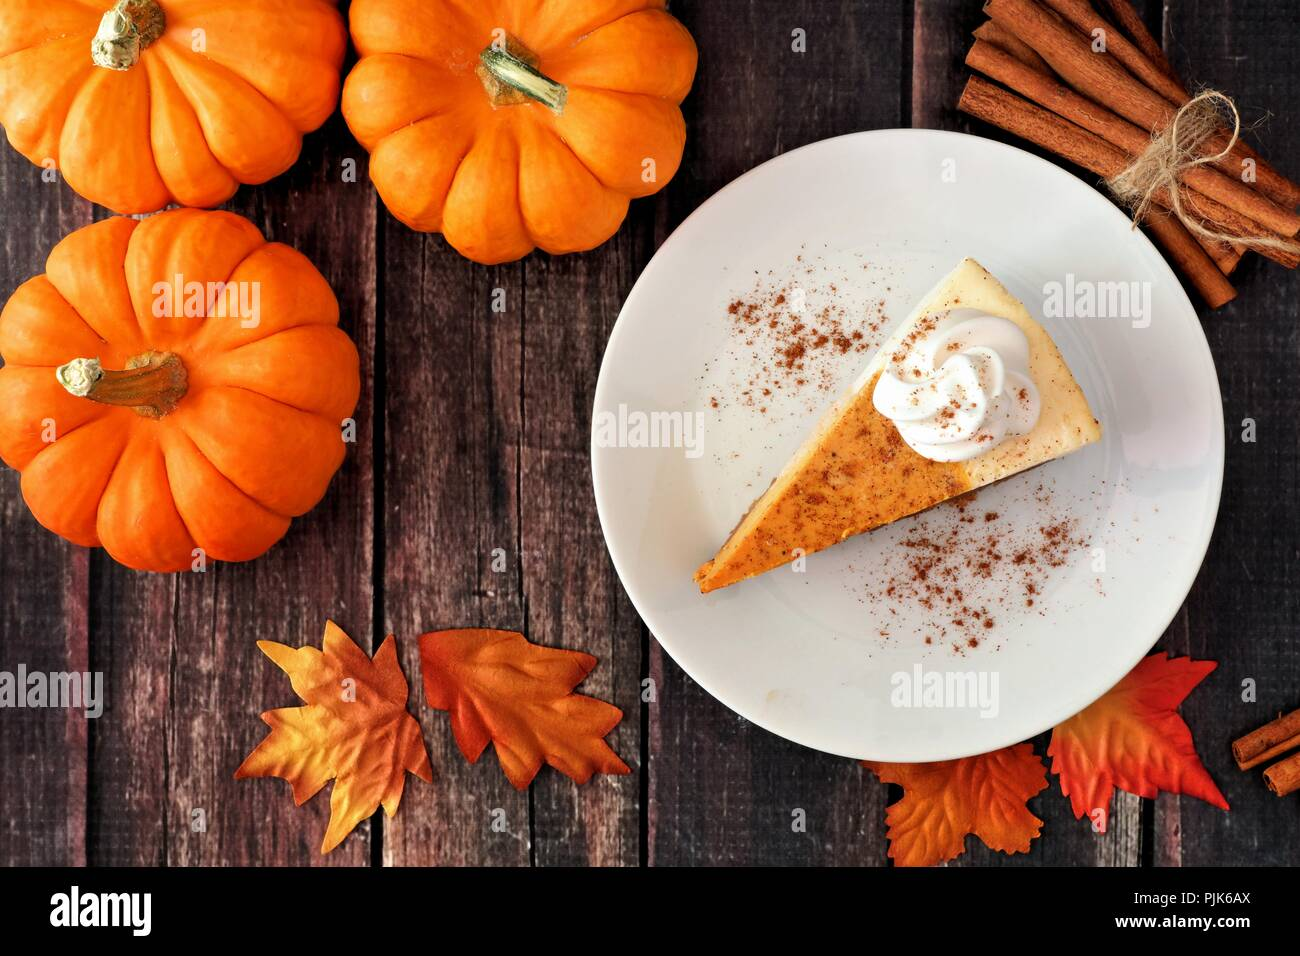 Slice of pumpkin cheesecake with whipped cream, top view on a rustic wooden background - Stock Image